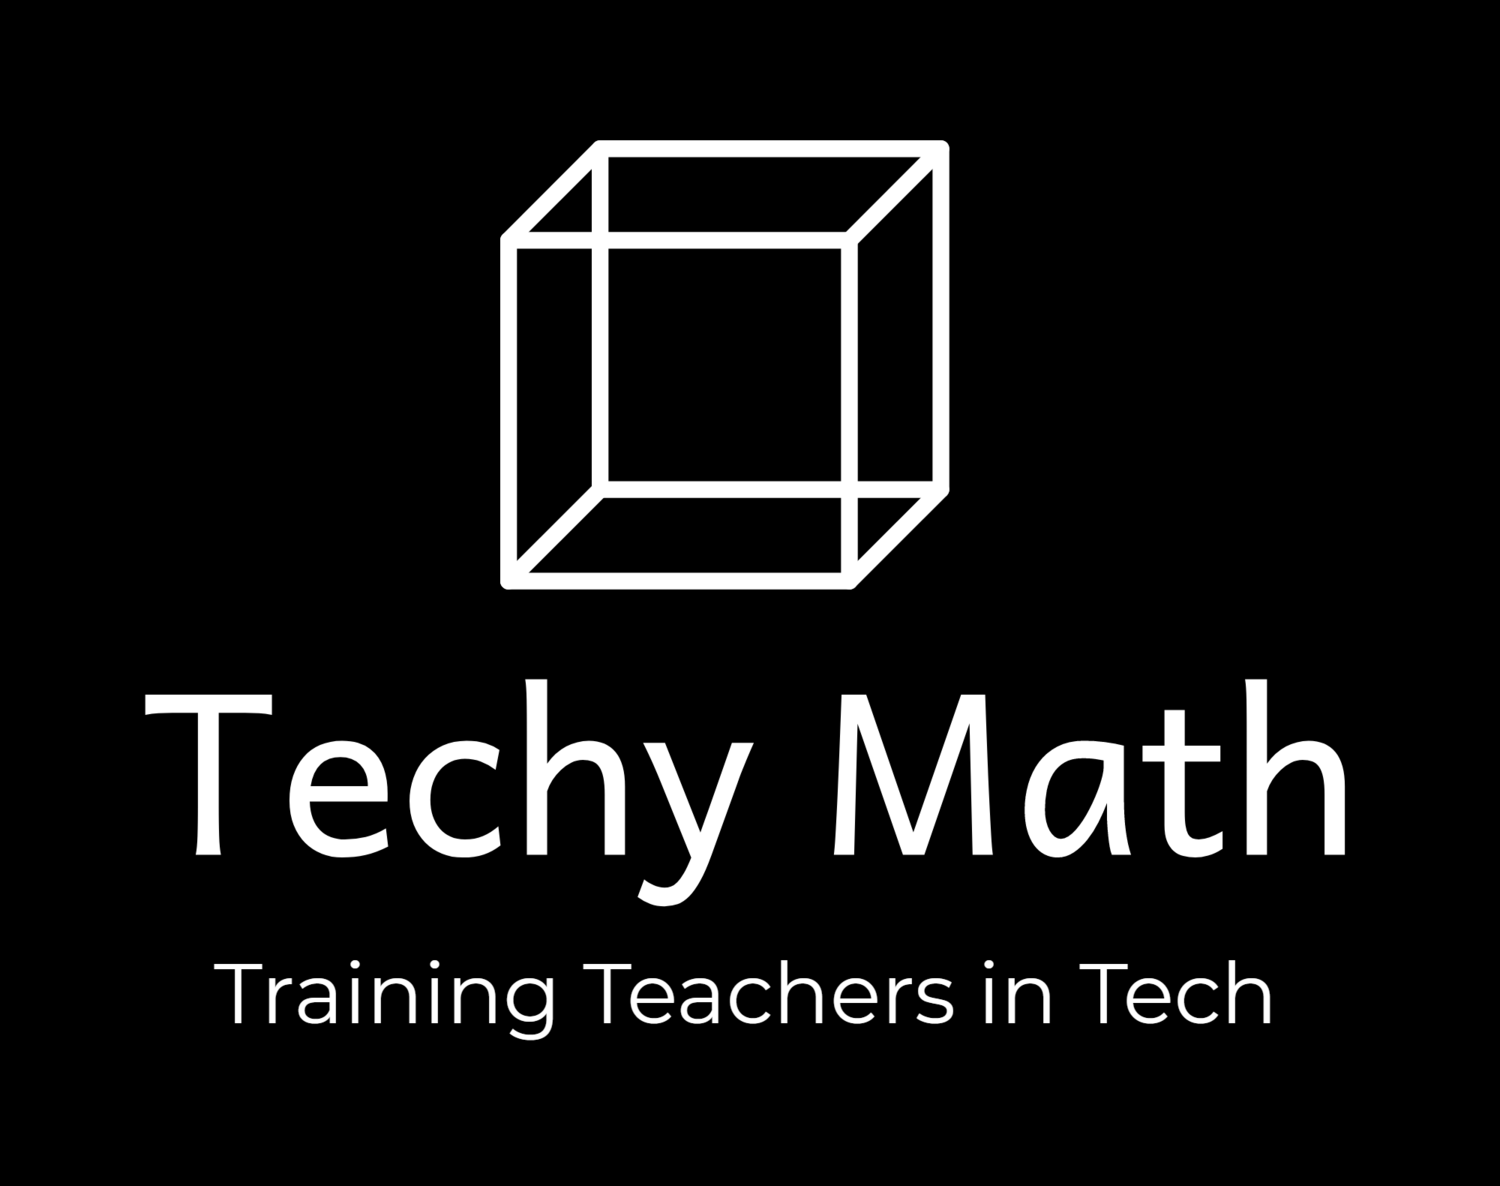 Techy Math